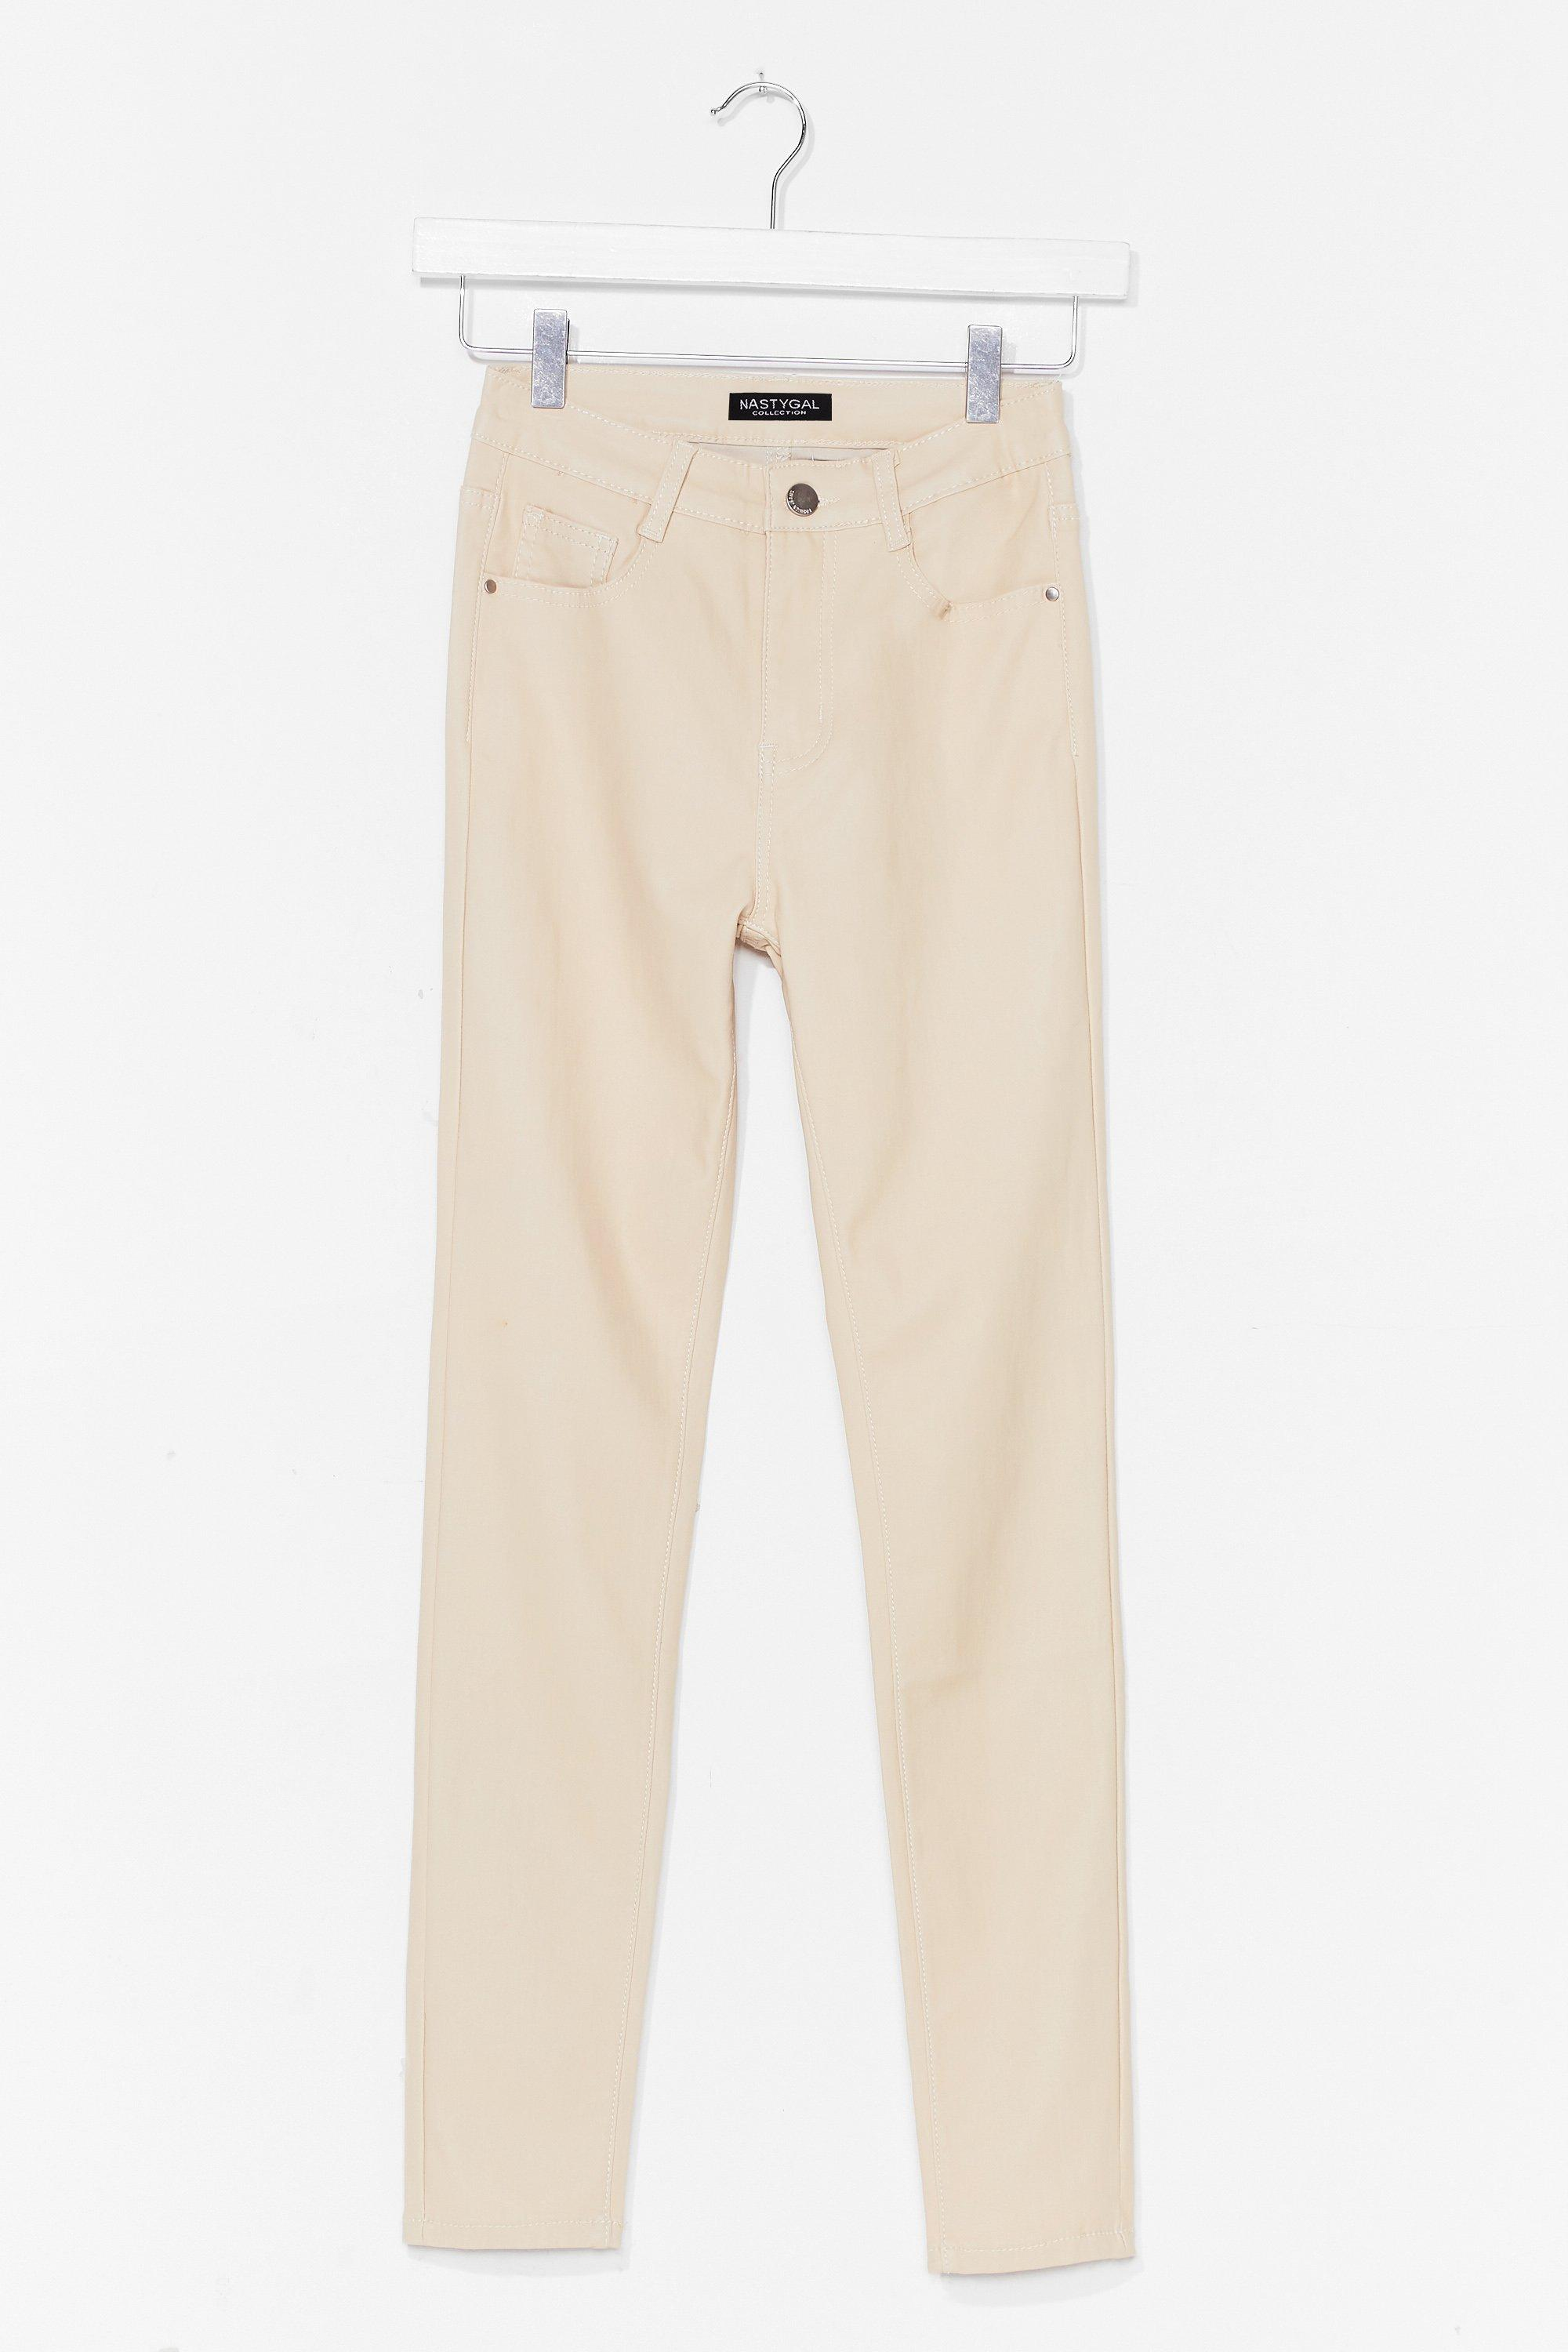 Image of Womens Get Coated High-Waisted Skinny Jeans - Cream